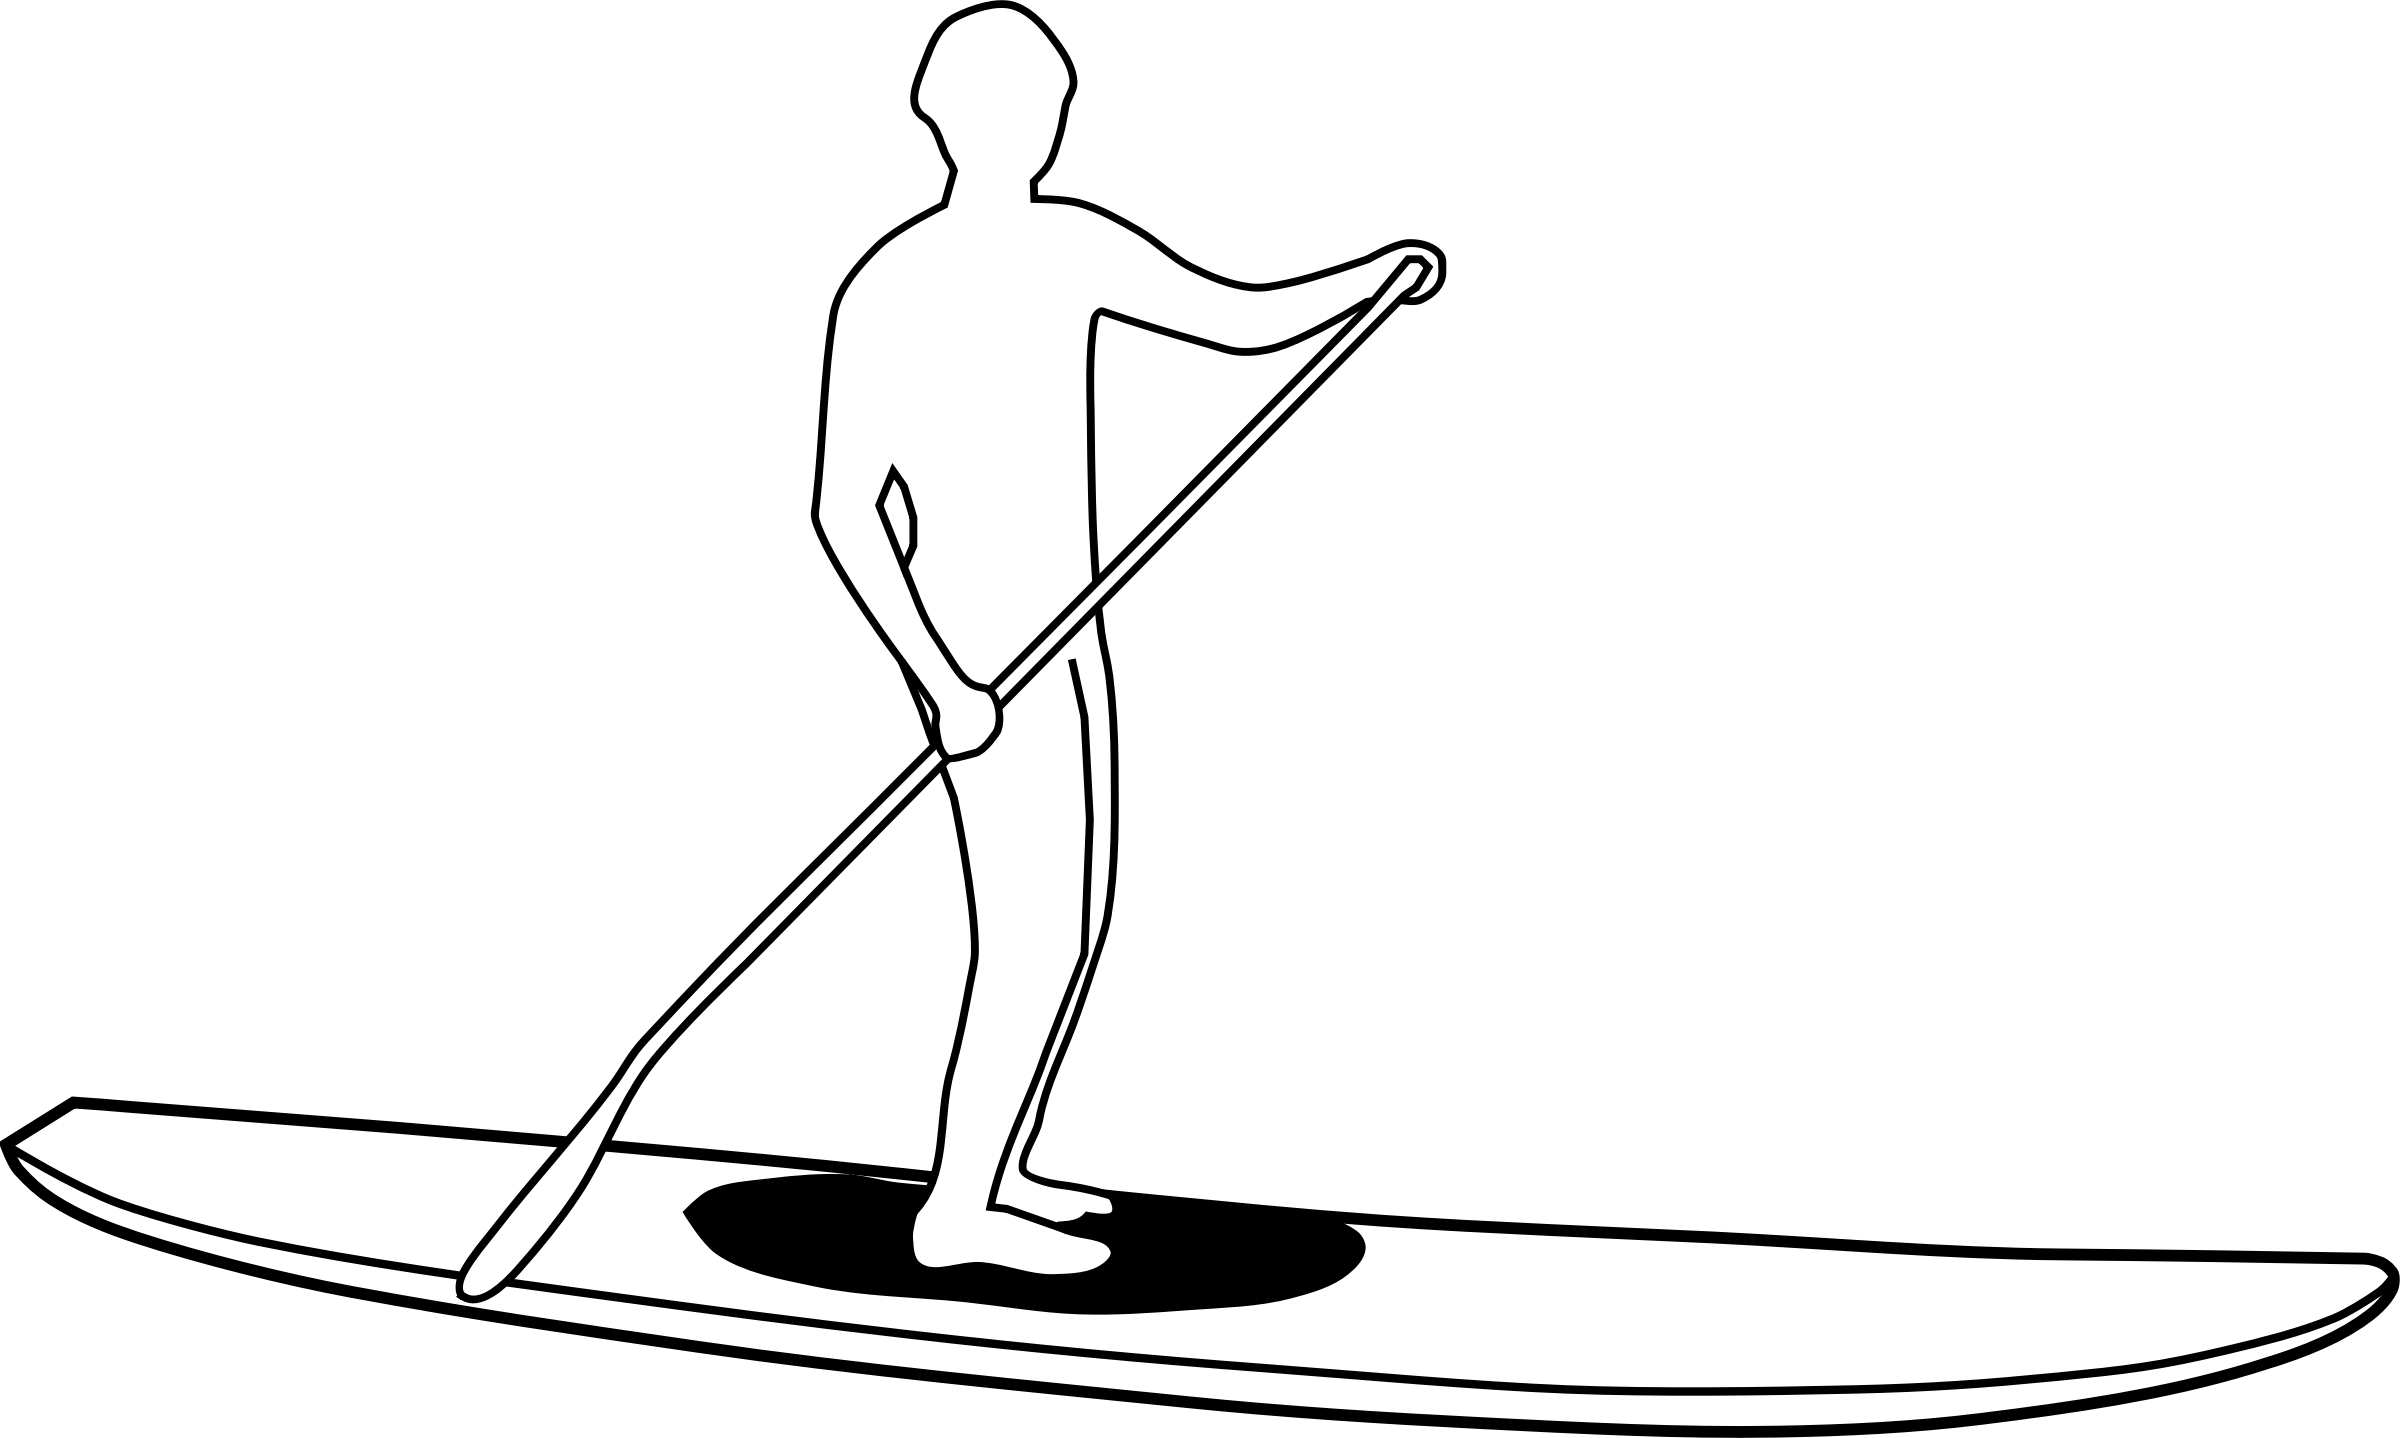 Paddle Clipart.